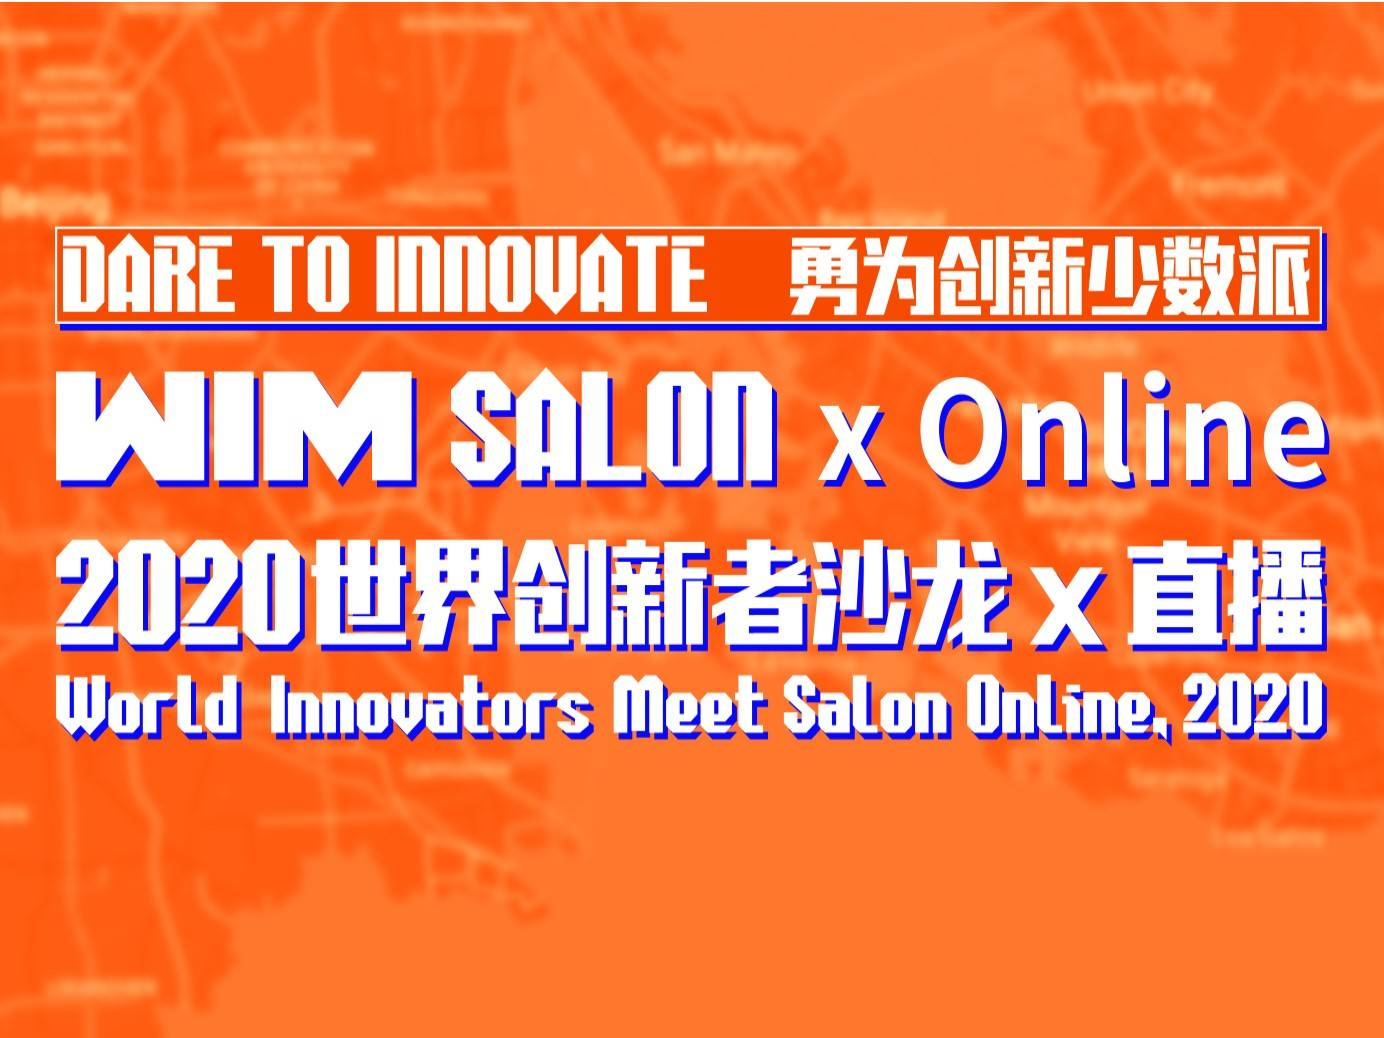 WIM Salon is a technology and innovation-focused event organized by EqualOcean.